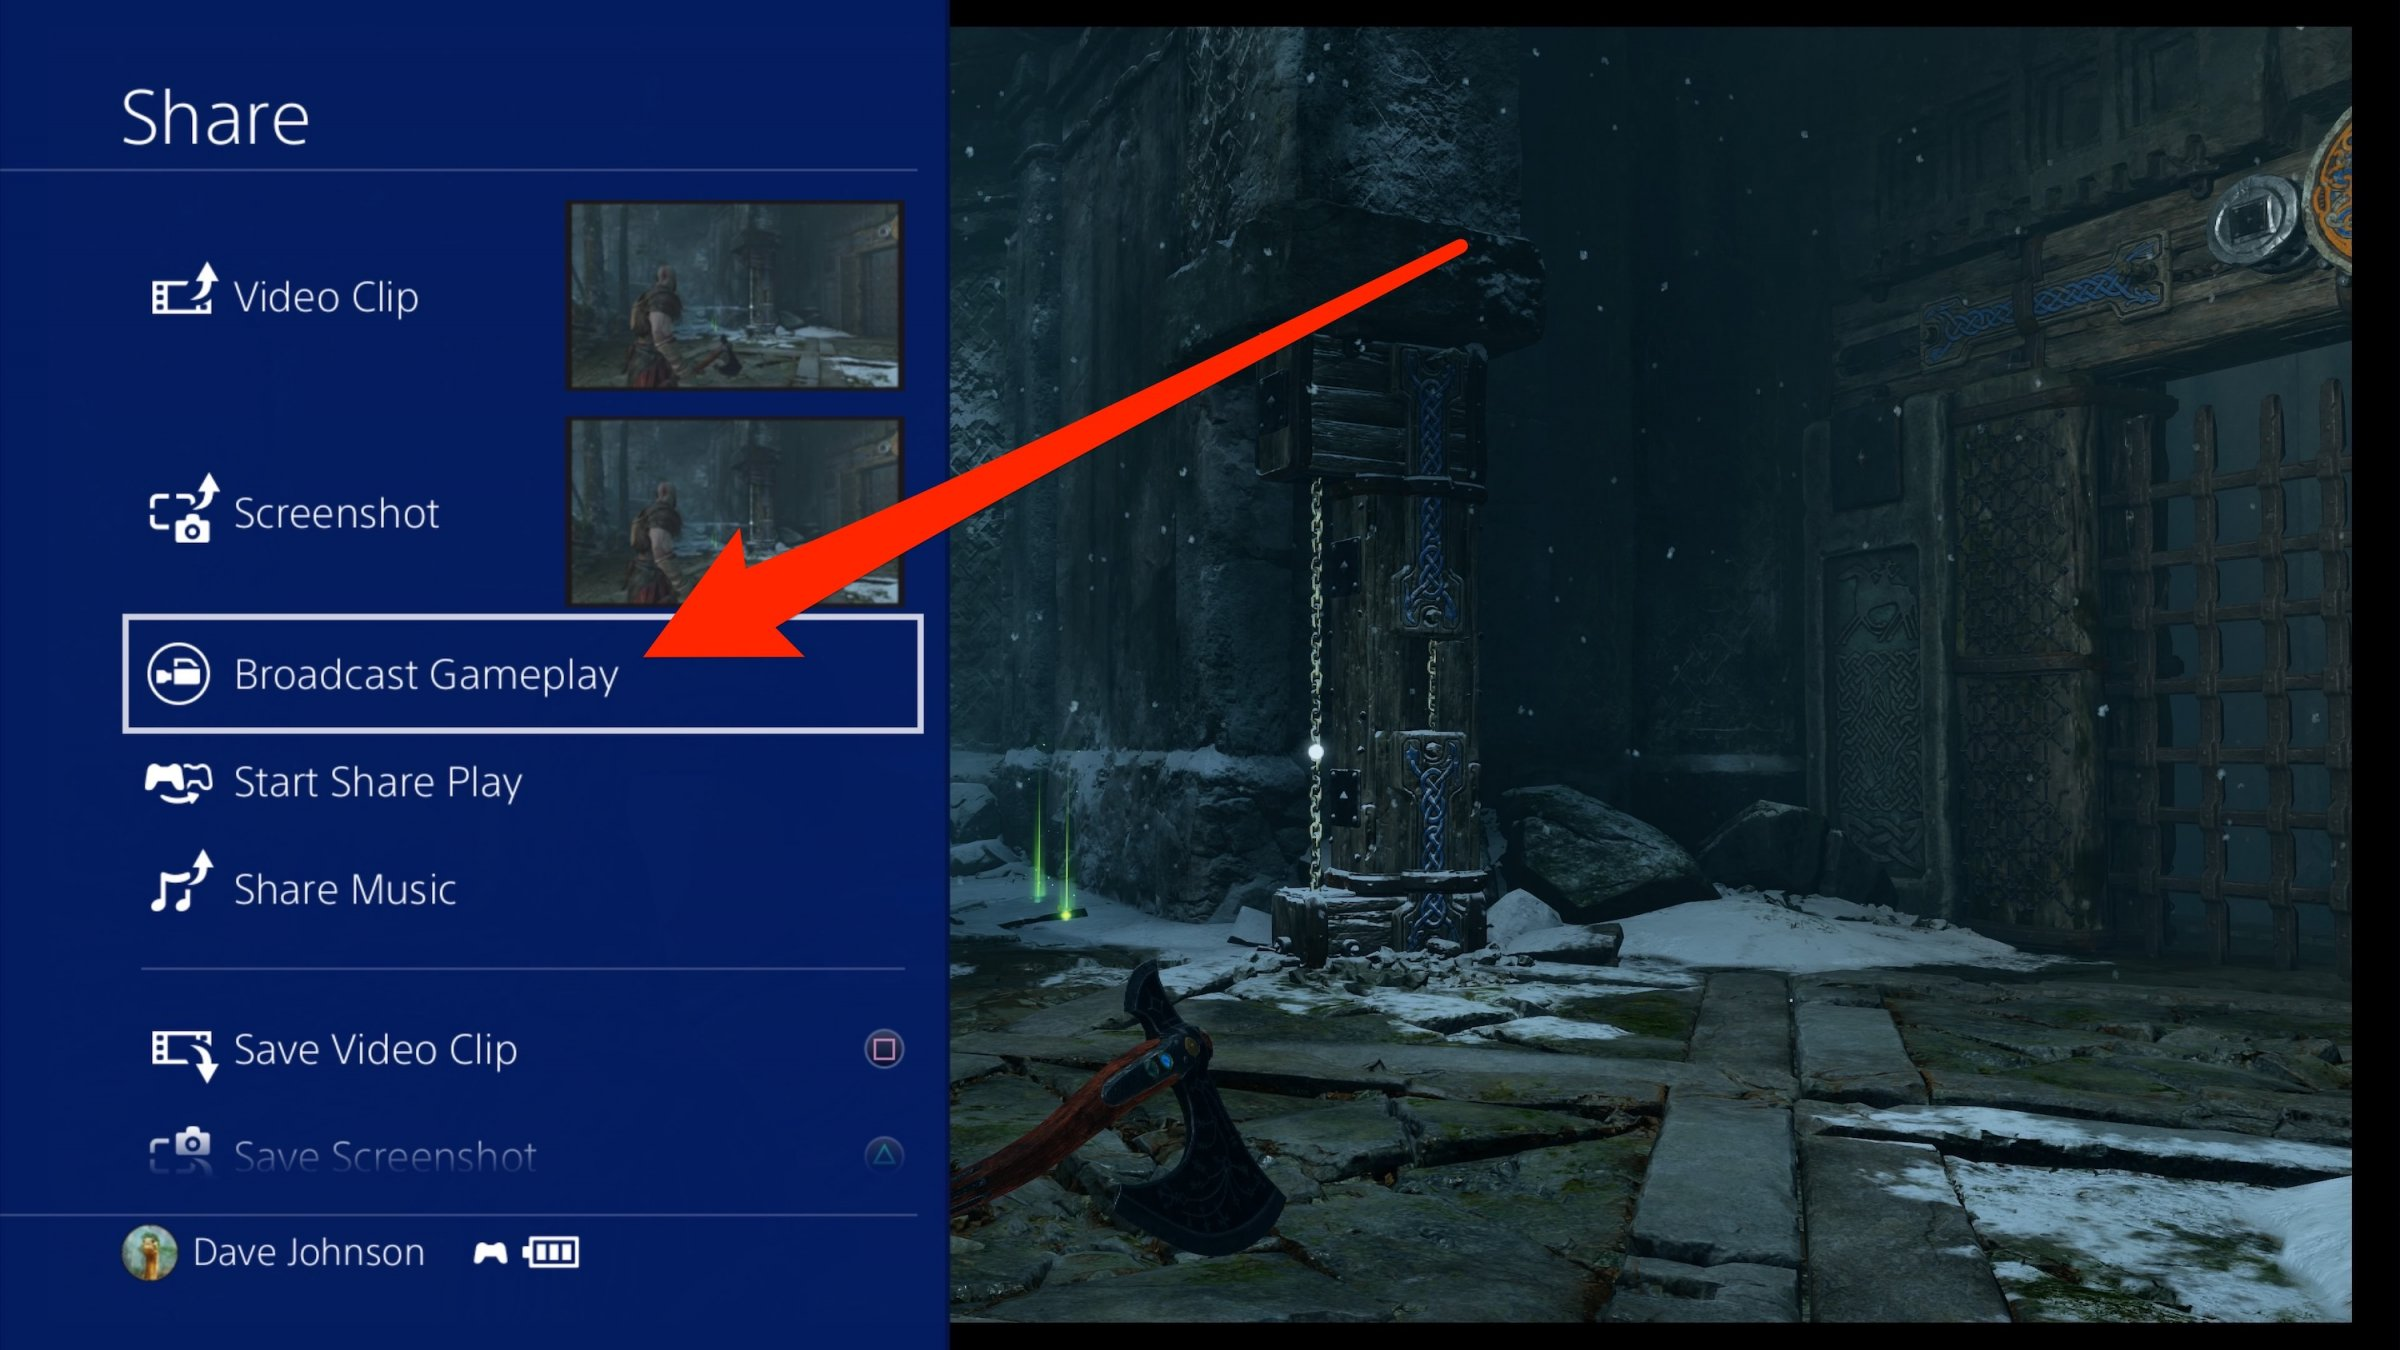 Follow the instructions to link your Twitch account to the PS4.